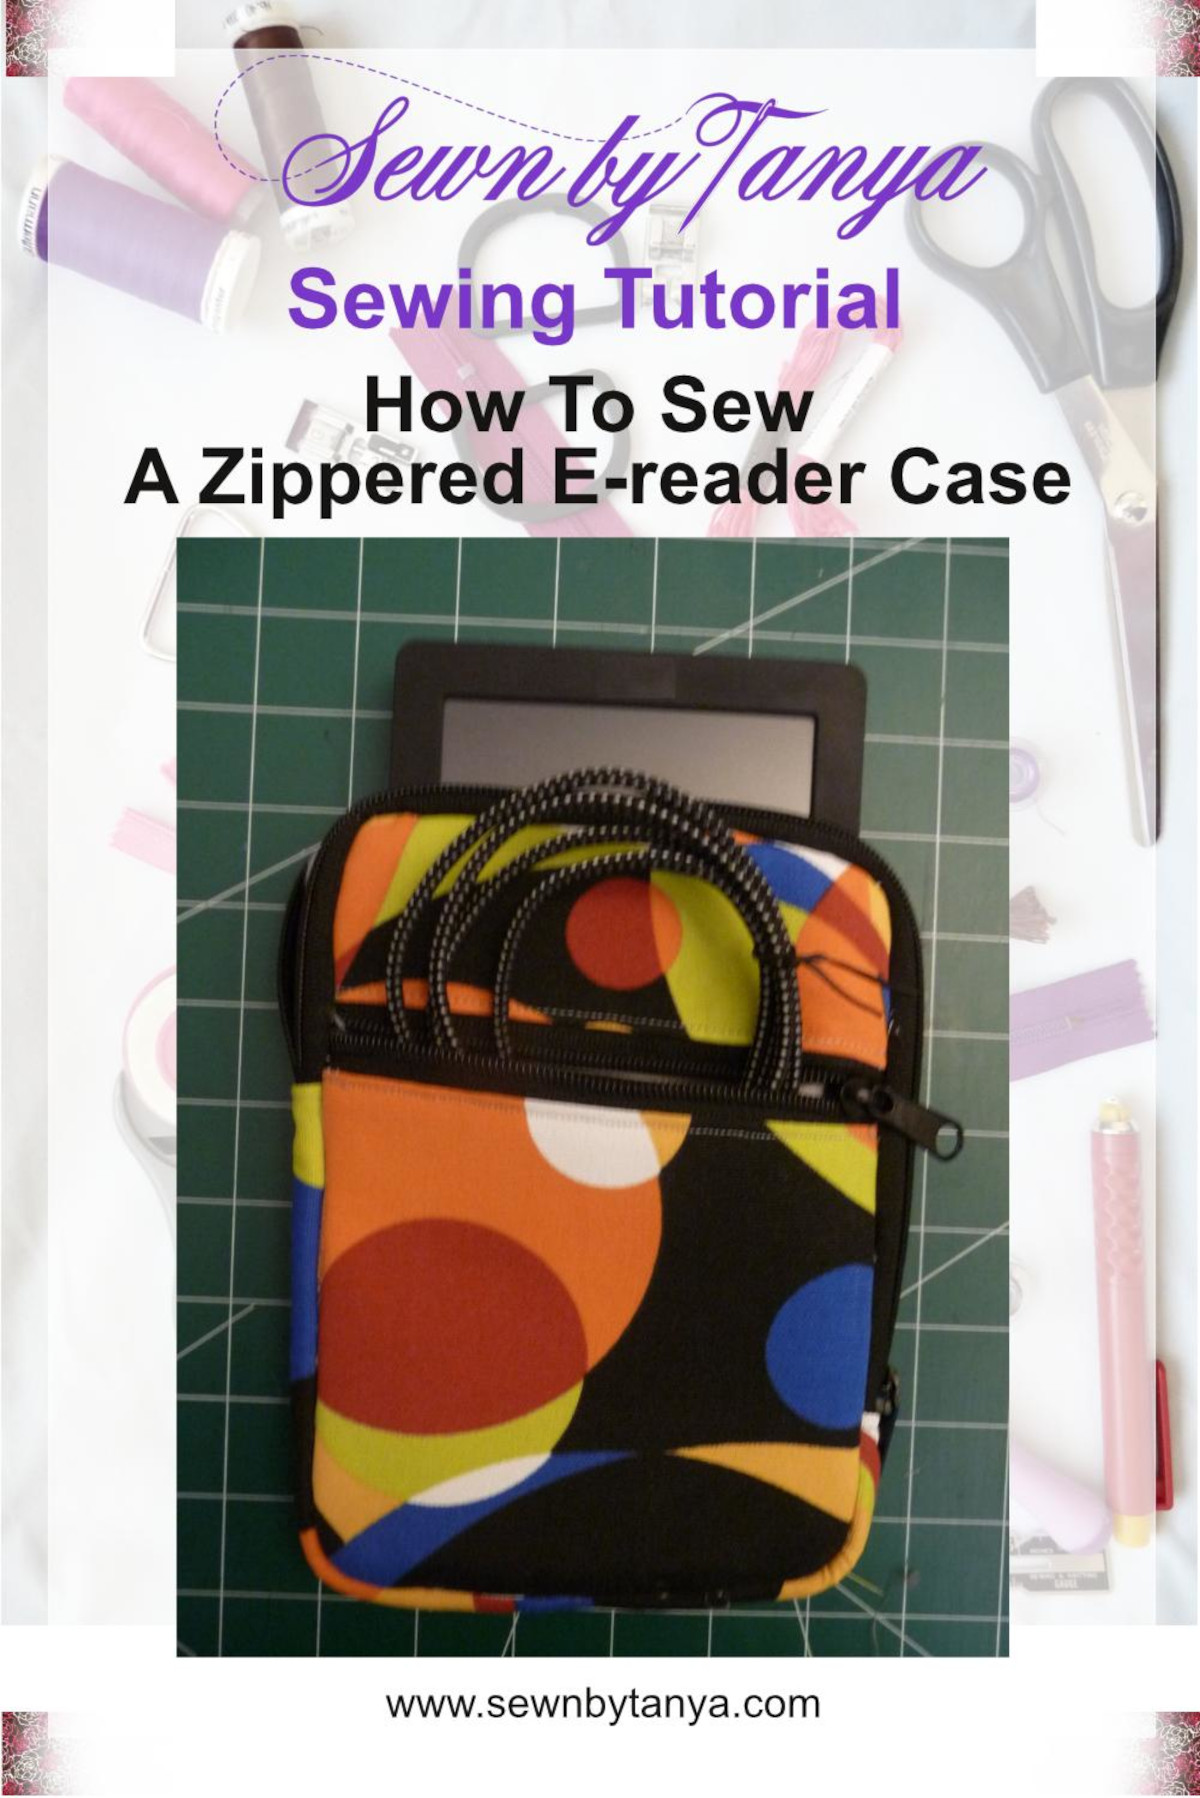 """""""Sewn By Tanya Sewing Tutorial: How To Sew A Zippered E-reader Case"""" shows a multicolored e-reader case wtih an e-reader sticking out of the main pocket and a charging cable sticking out of the front pocket"""